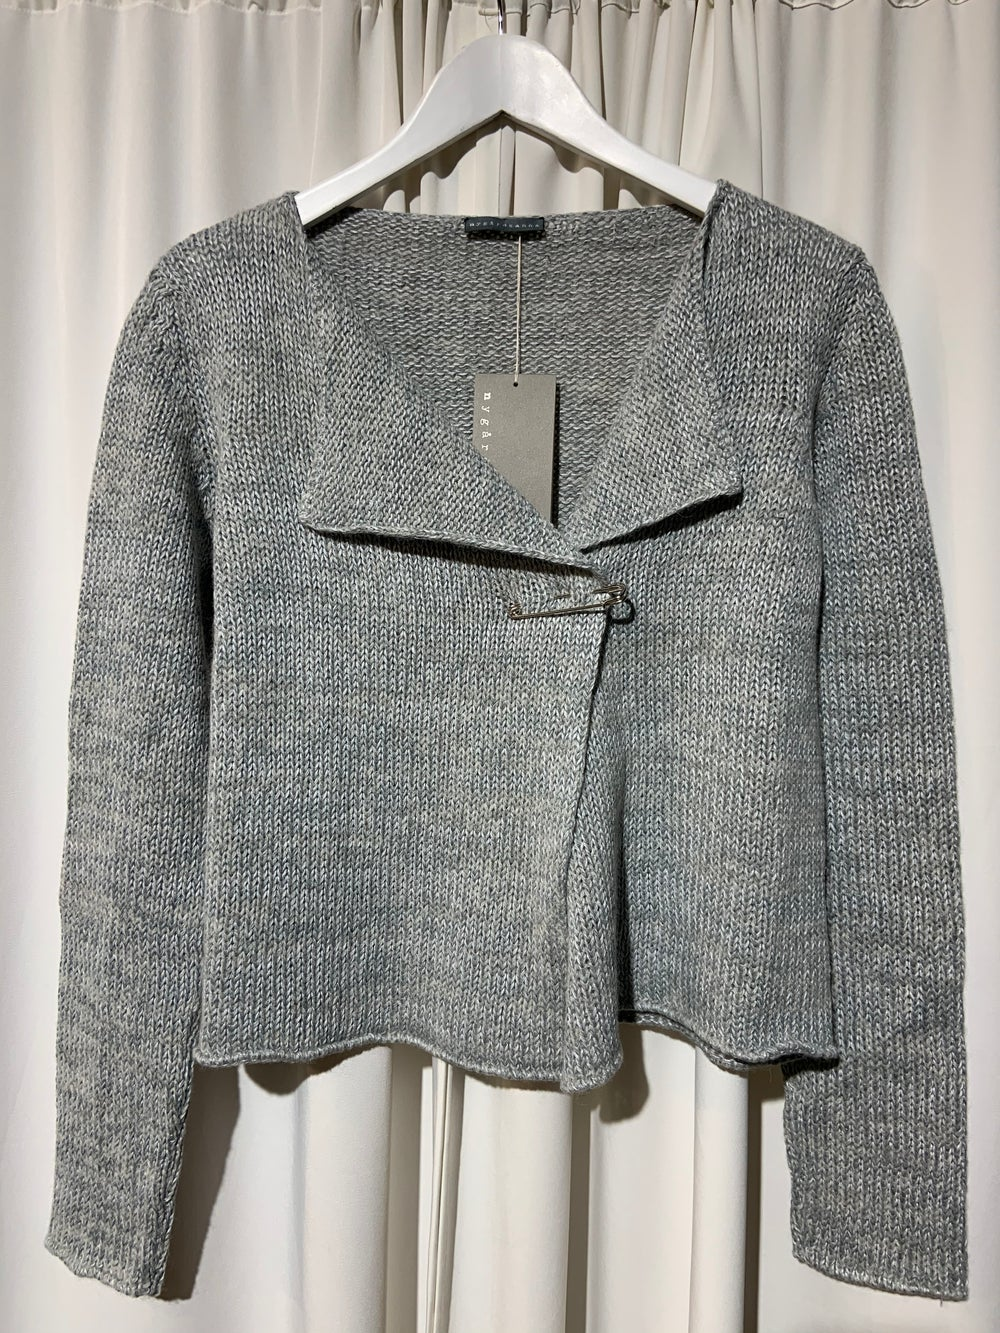 Image of NYGARDSANNA Wrap Cardigan grey blue